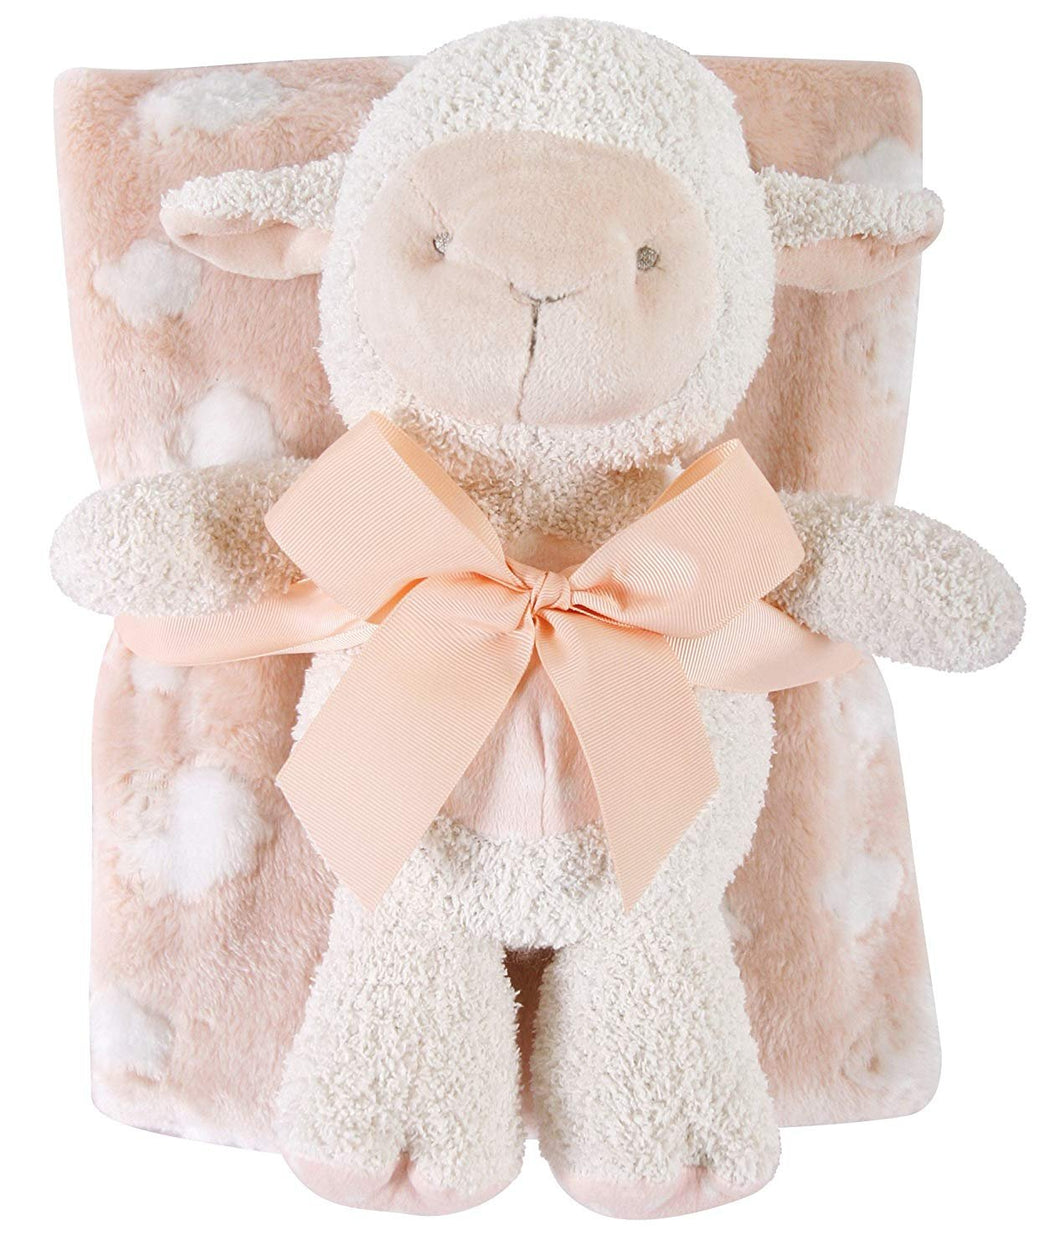 Blanket and Plush Toy Set by Stephan Baby